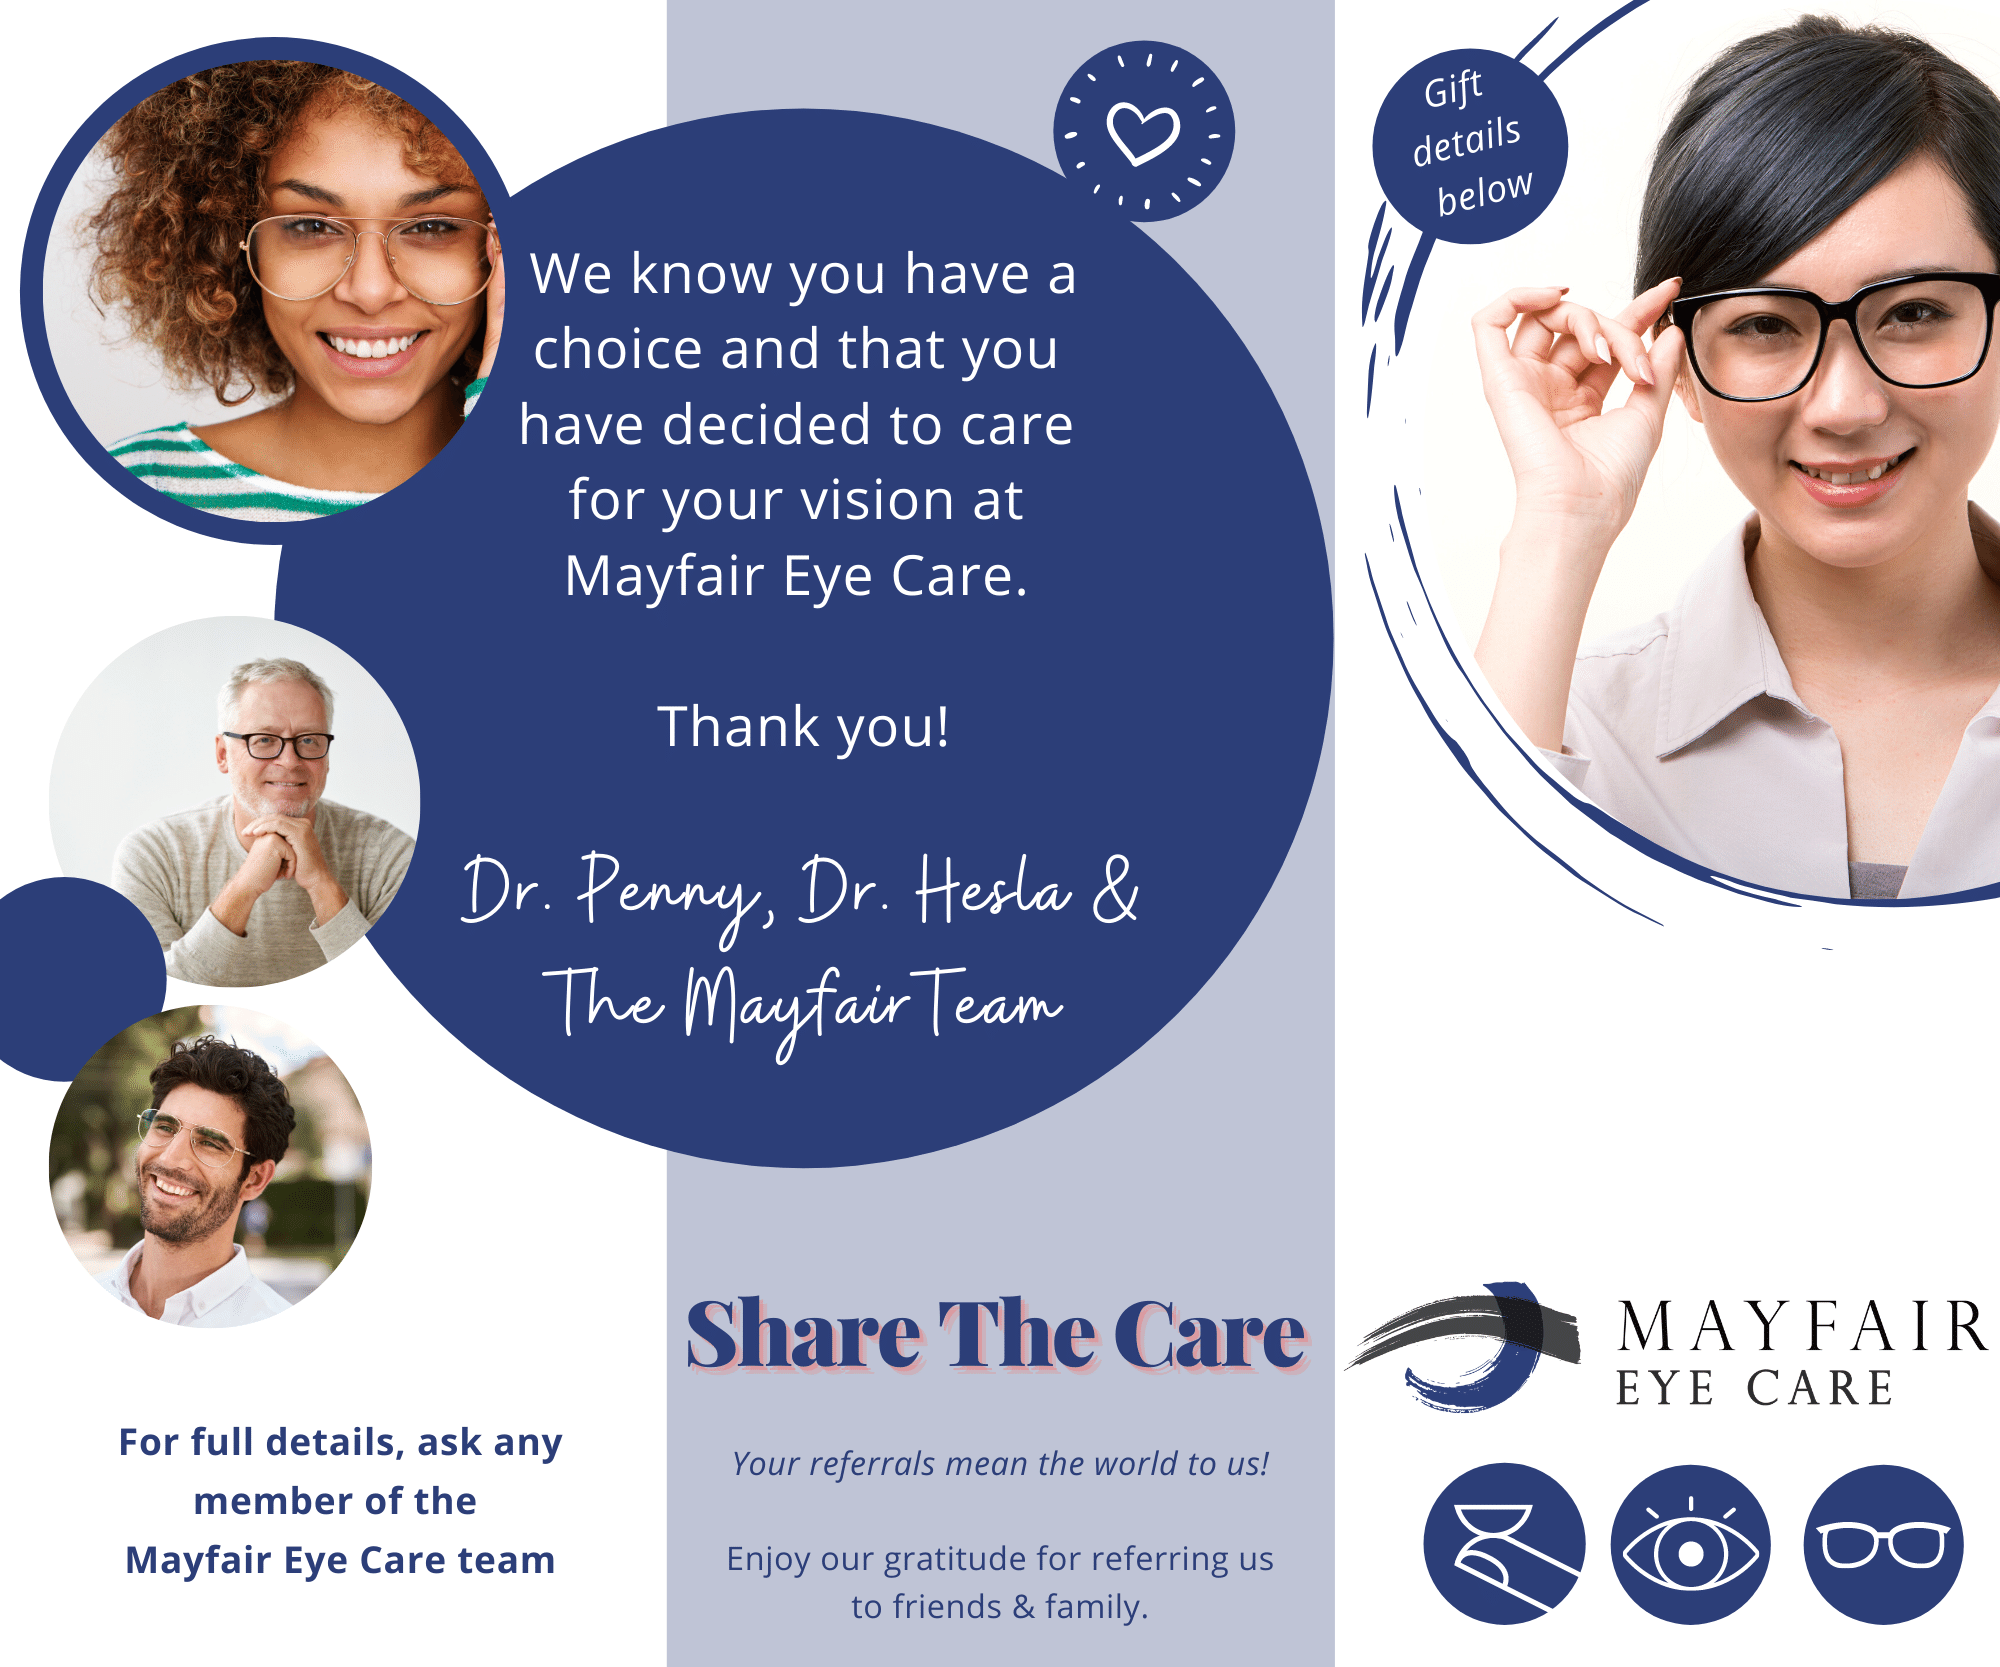 Mayfair eye care calgary optometrist vision therapy boutique frames dr penny hesla